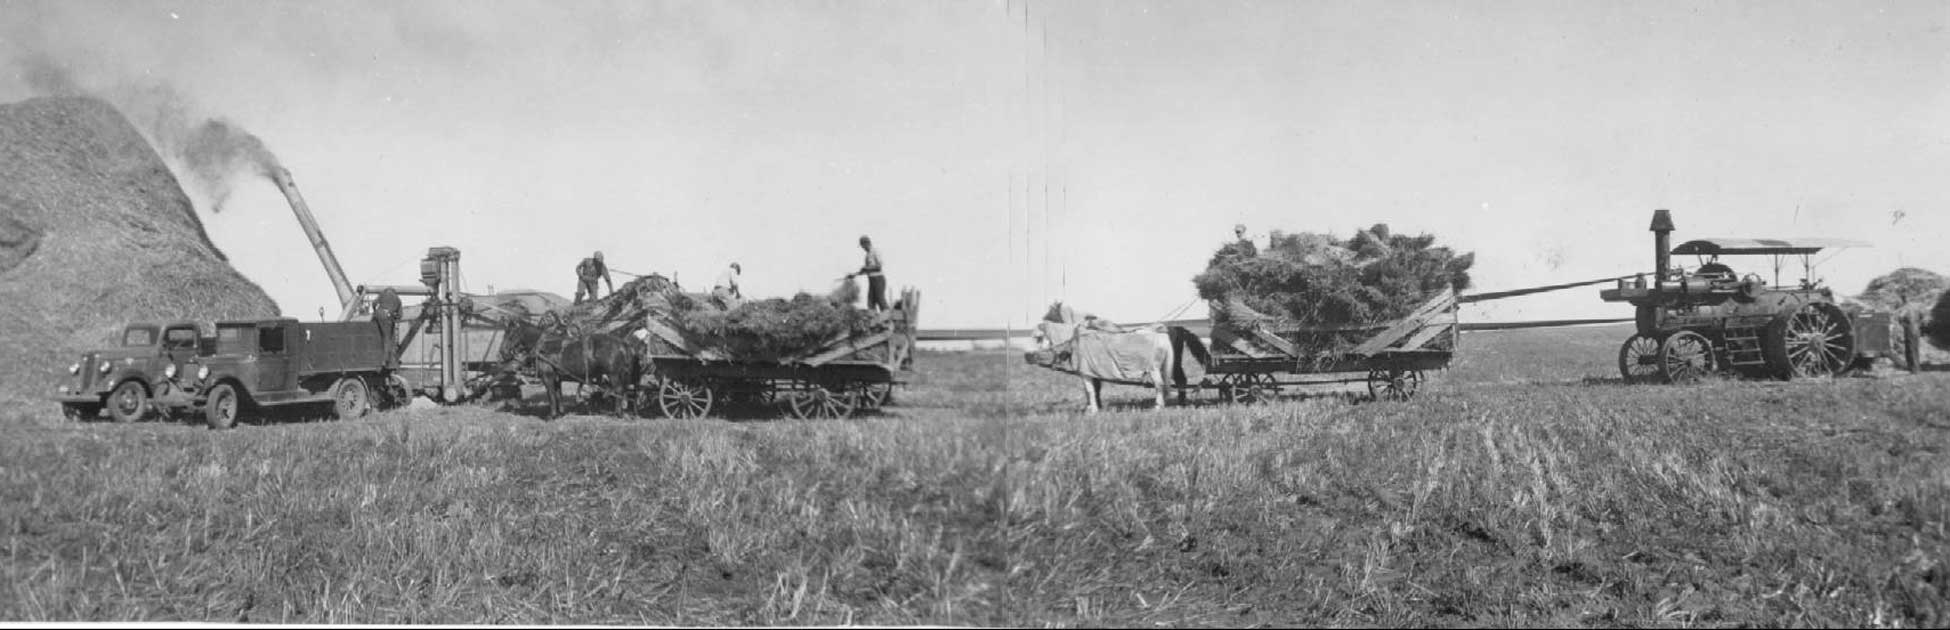 Figure 47. A threshing crew